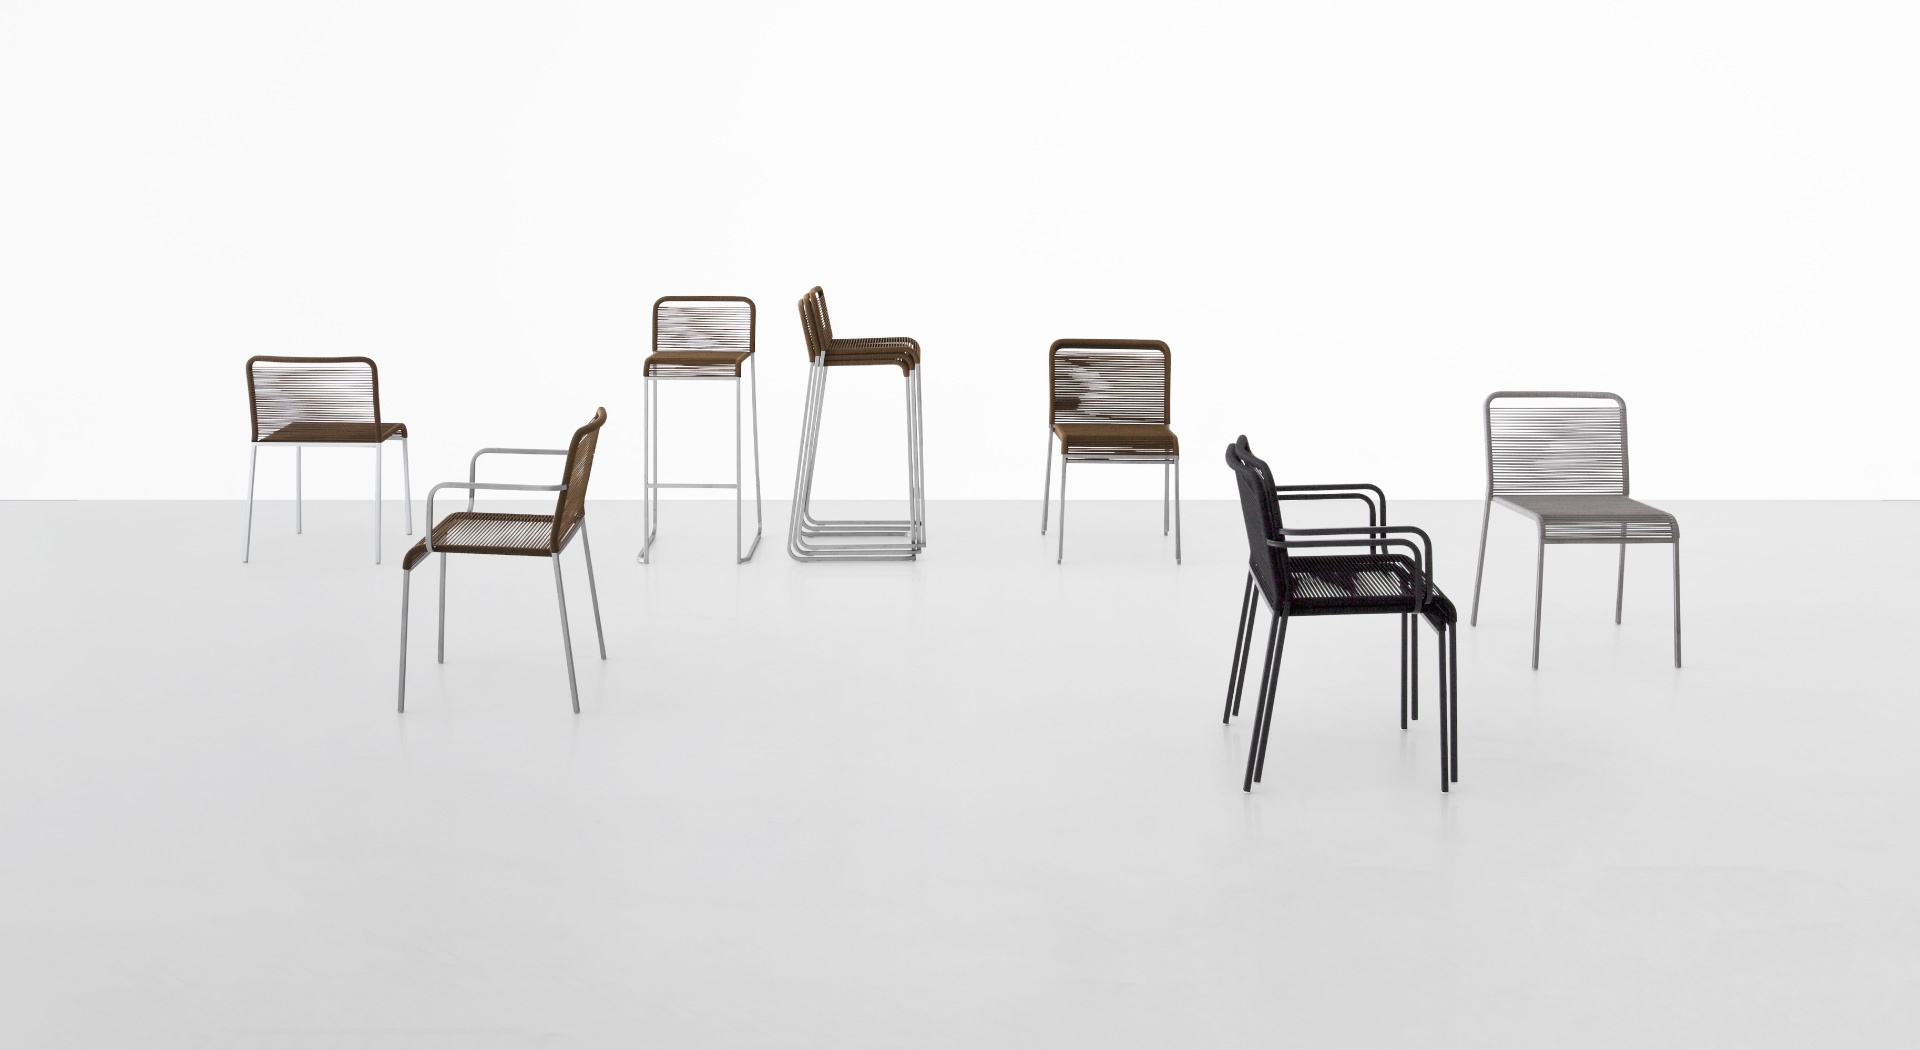 Impalpable And Iconic, ARIA Is The Very Essence Of The Outdoor Chair: A  Simple Metal Frame, With A Square Cross Section, Is Wrapped In A Continuous  Length ...